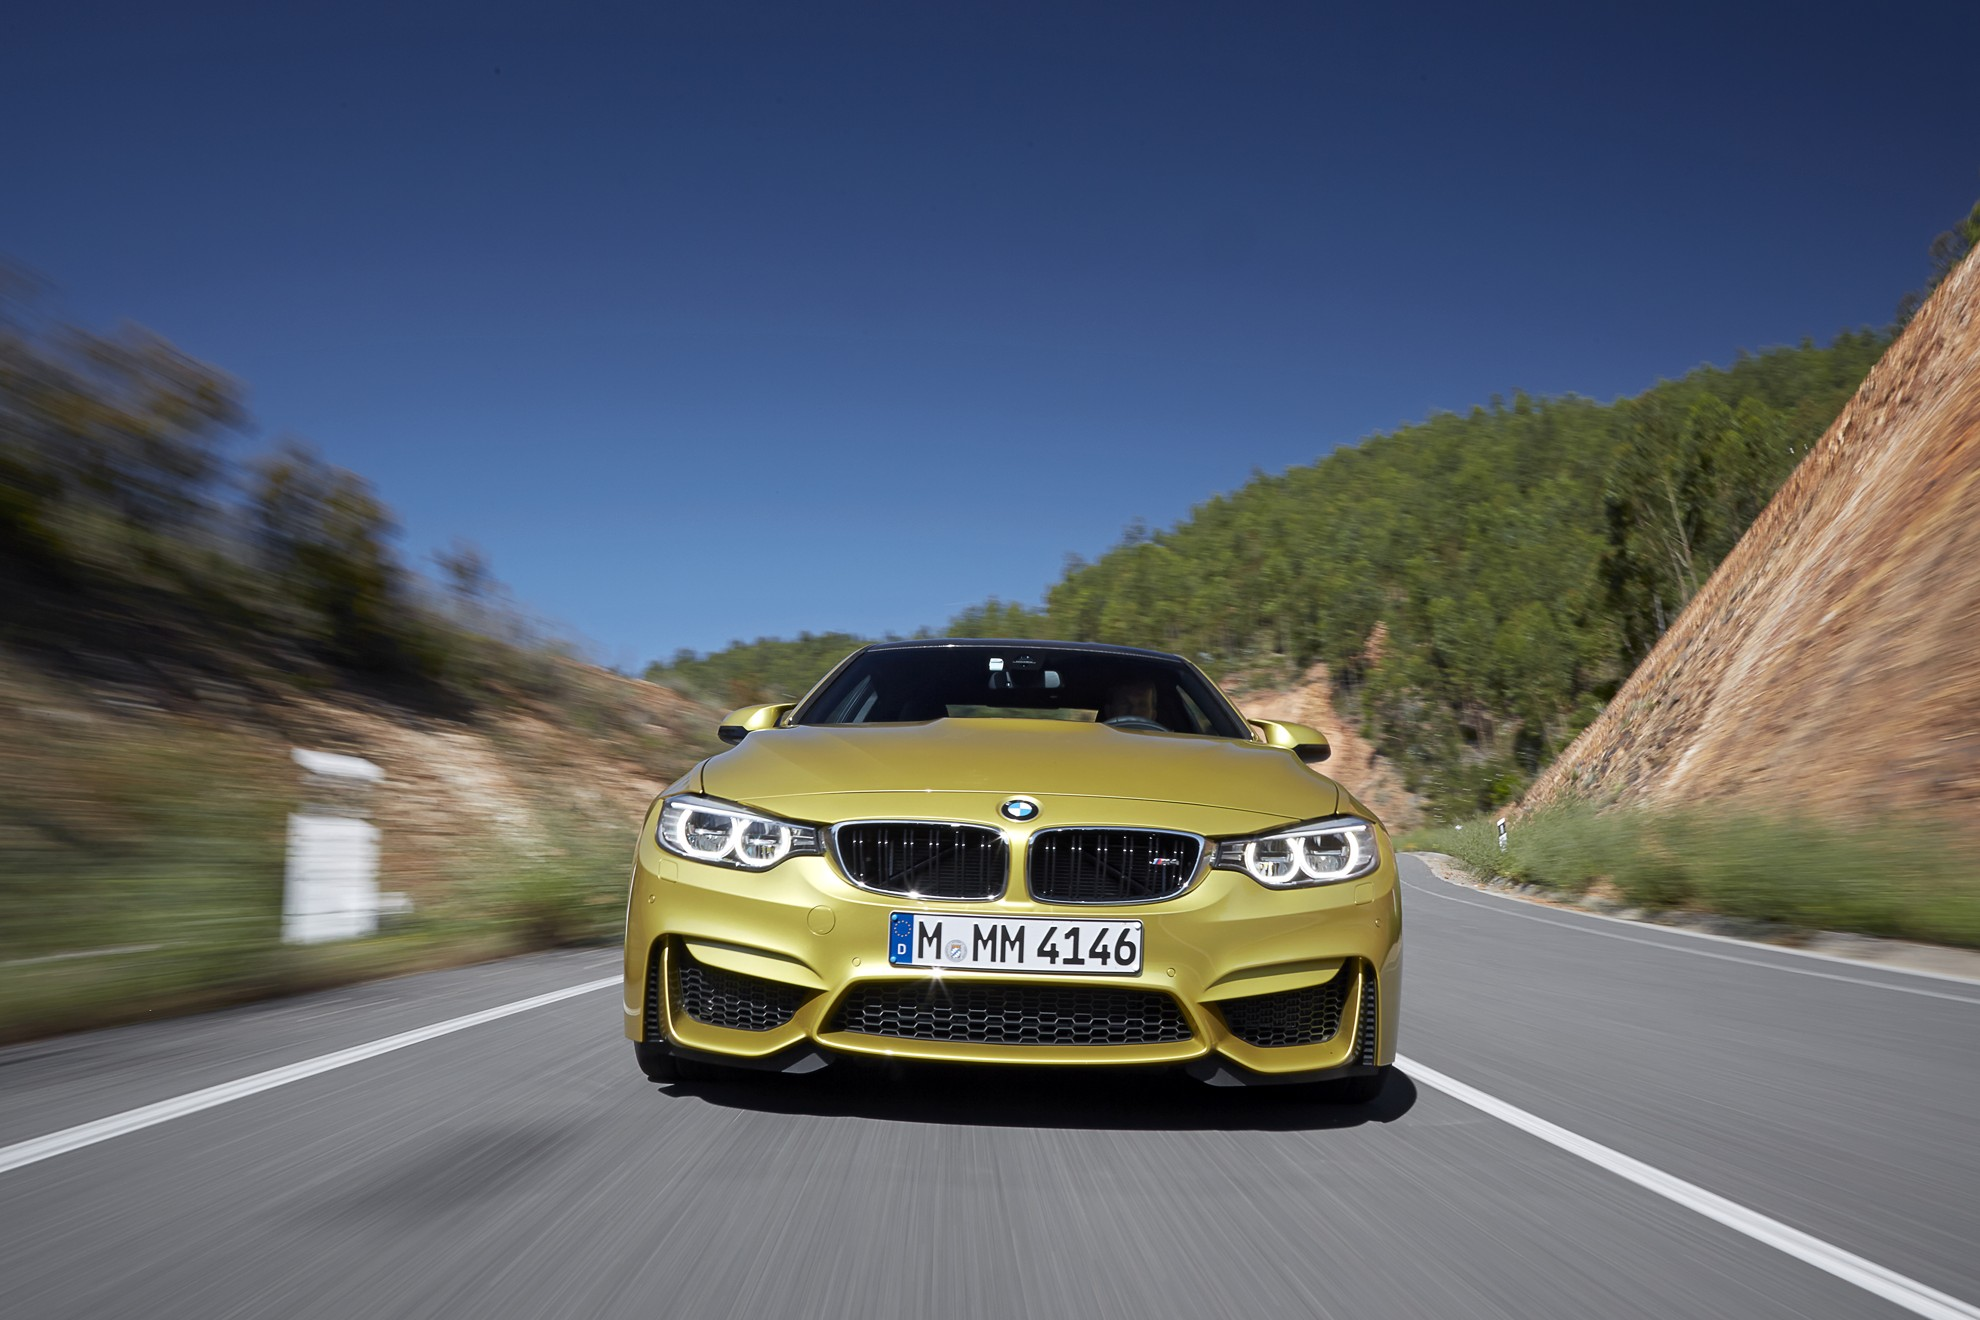 The new BMW M3 Sedan and new BMW M4 Coupe